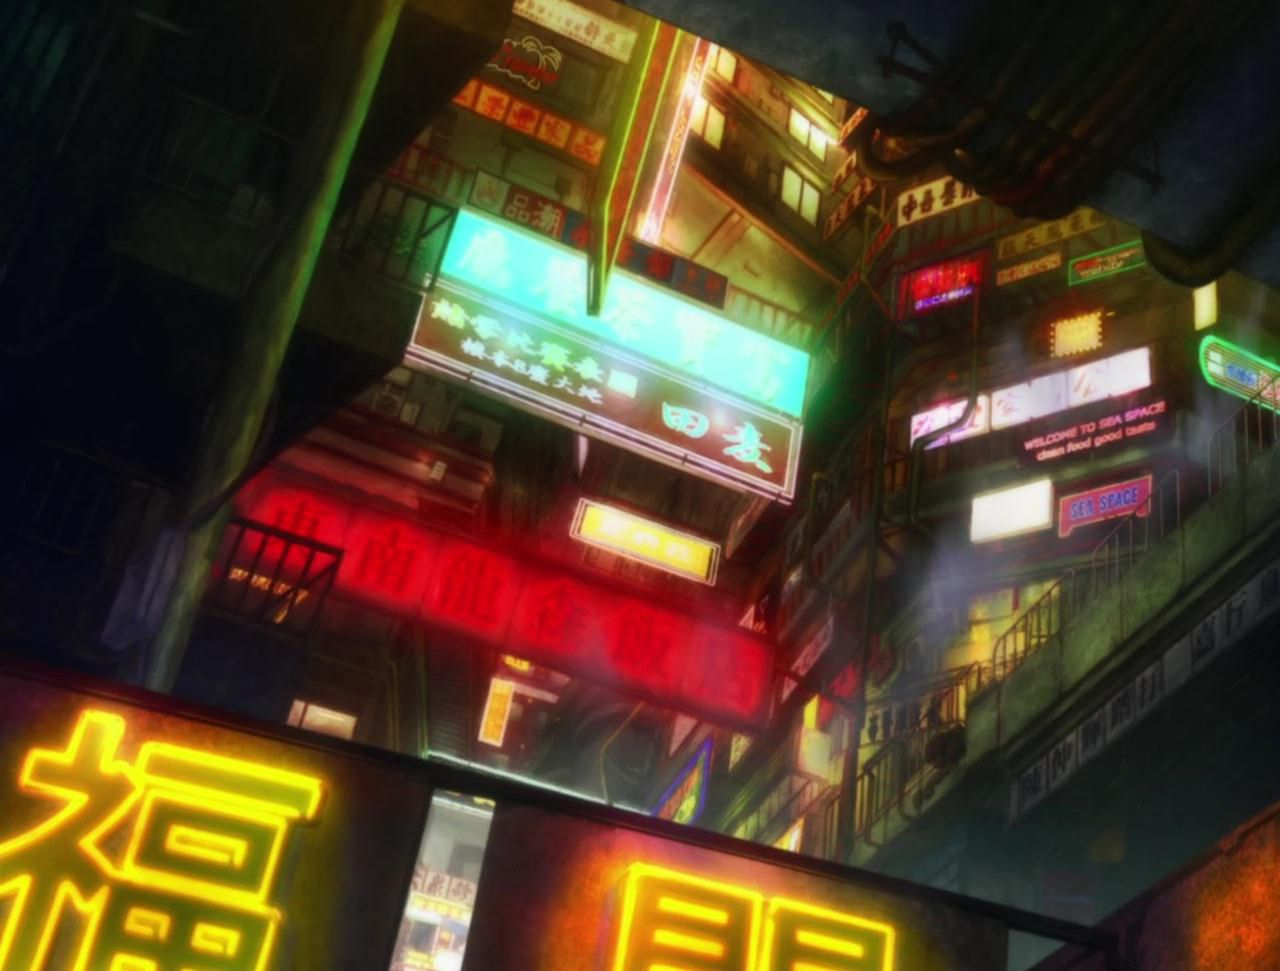 Psycho Pass. Directed by Naoyoshi Shiotani. Created by Production I.G.